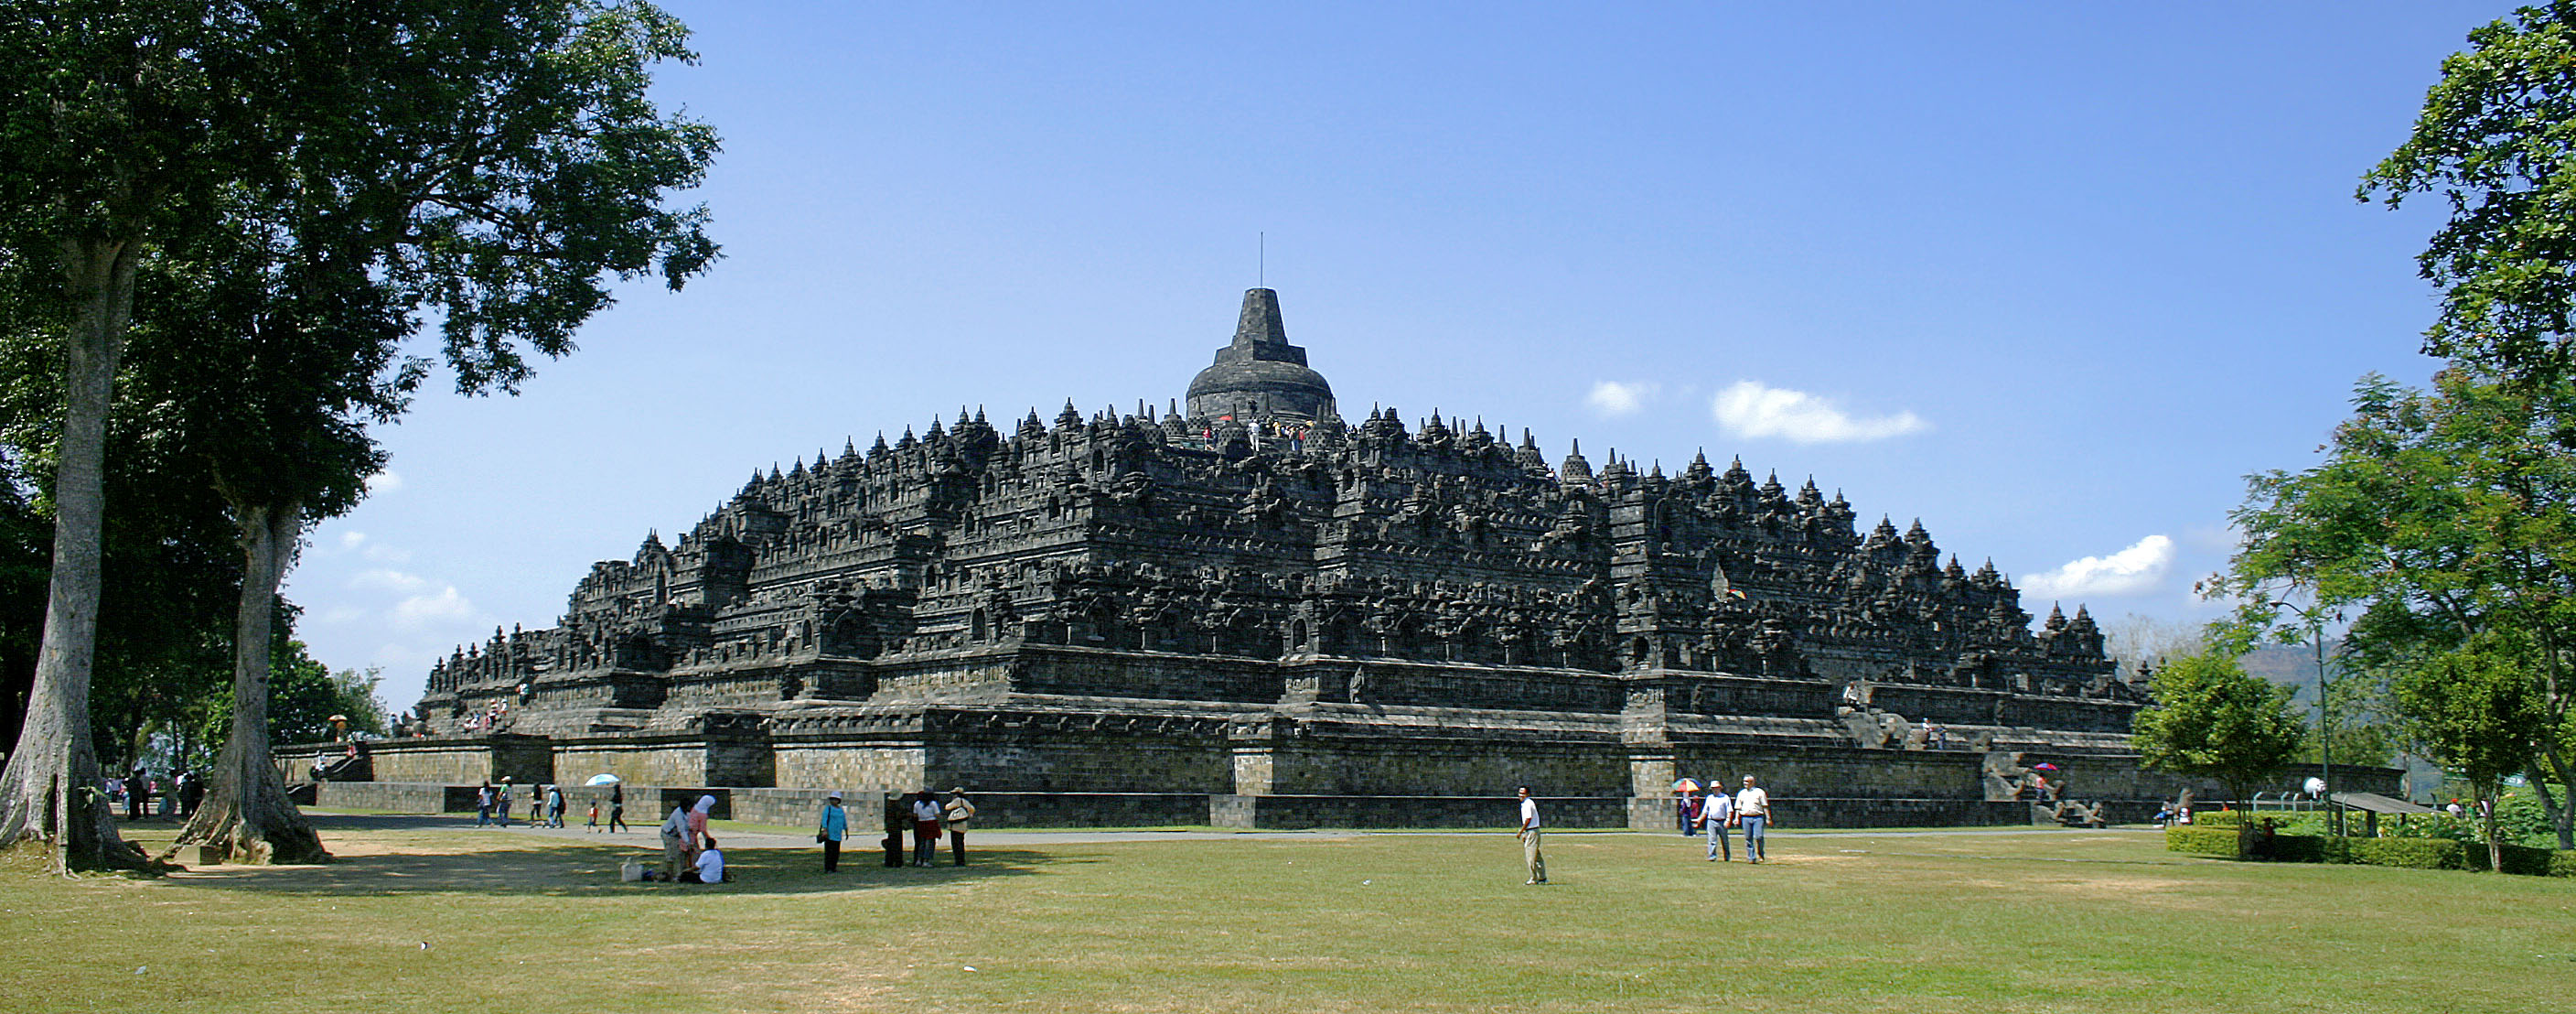 Image 12. Borobudur temple view from northwest plateau, Central Java, Indonesia. Photo by Gunawan Kartapranata.